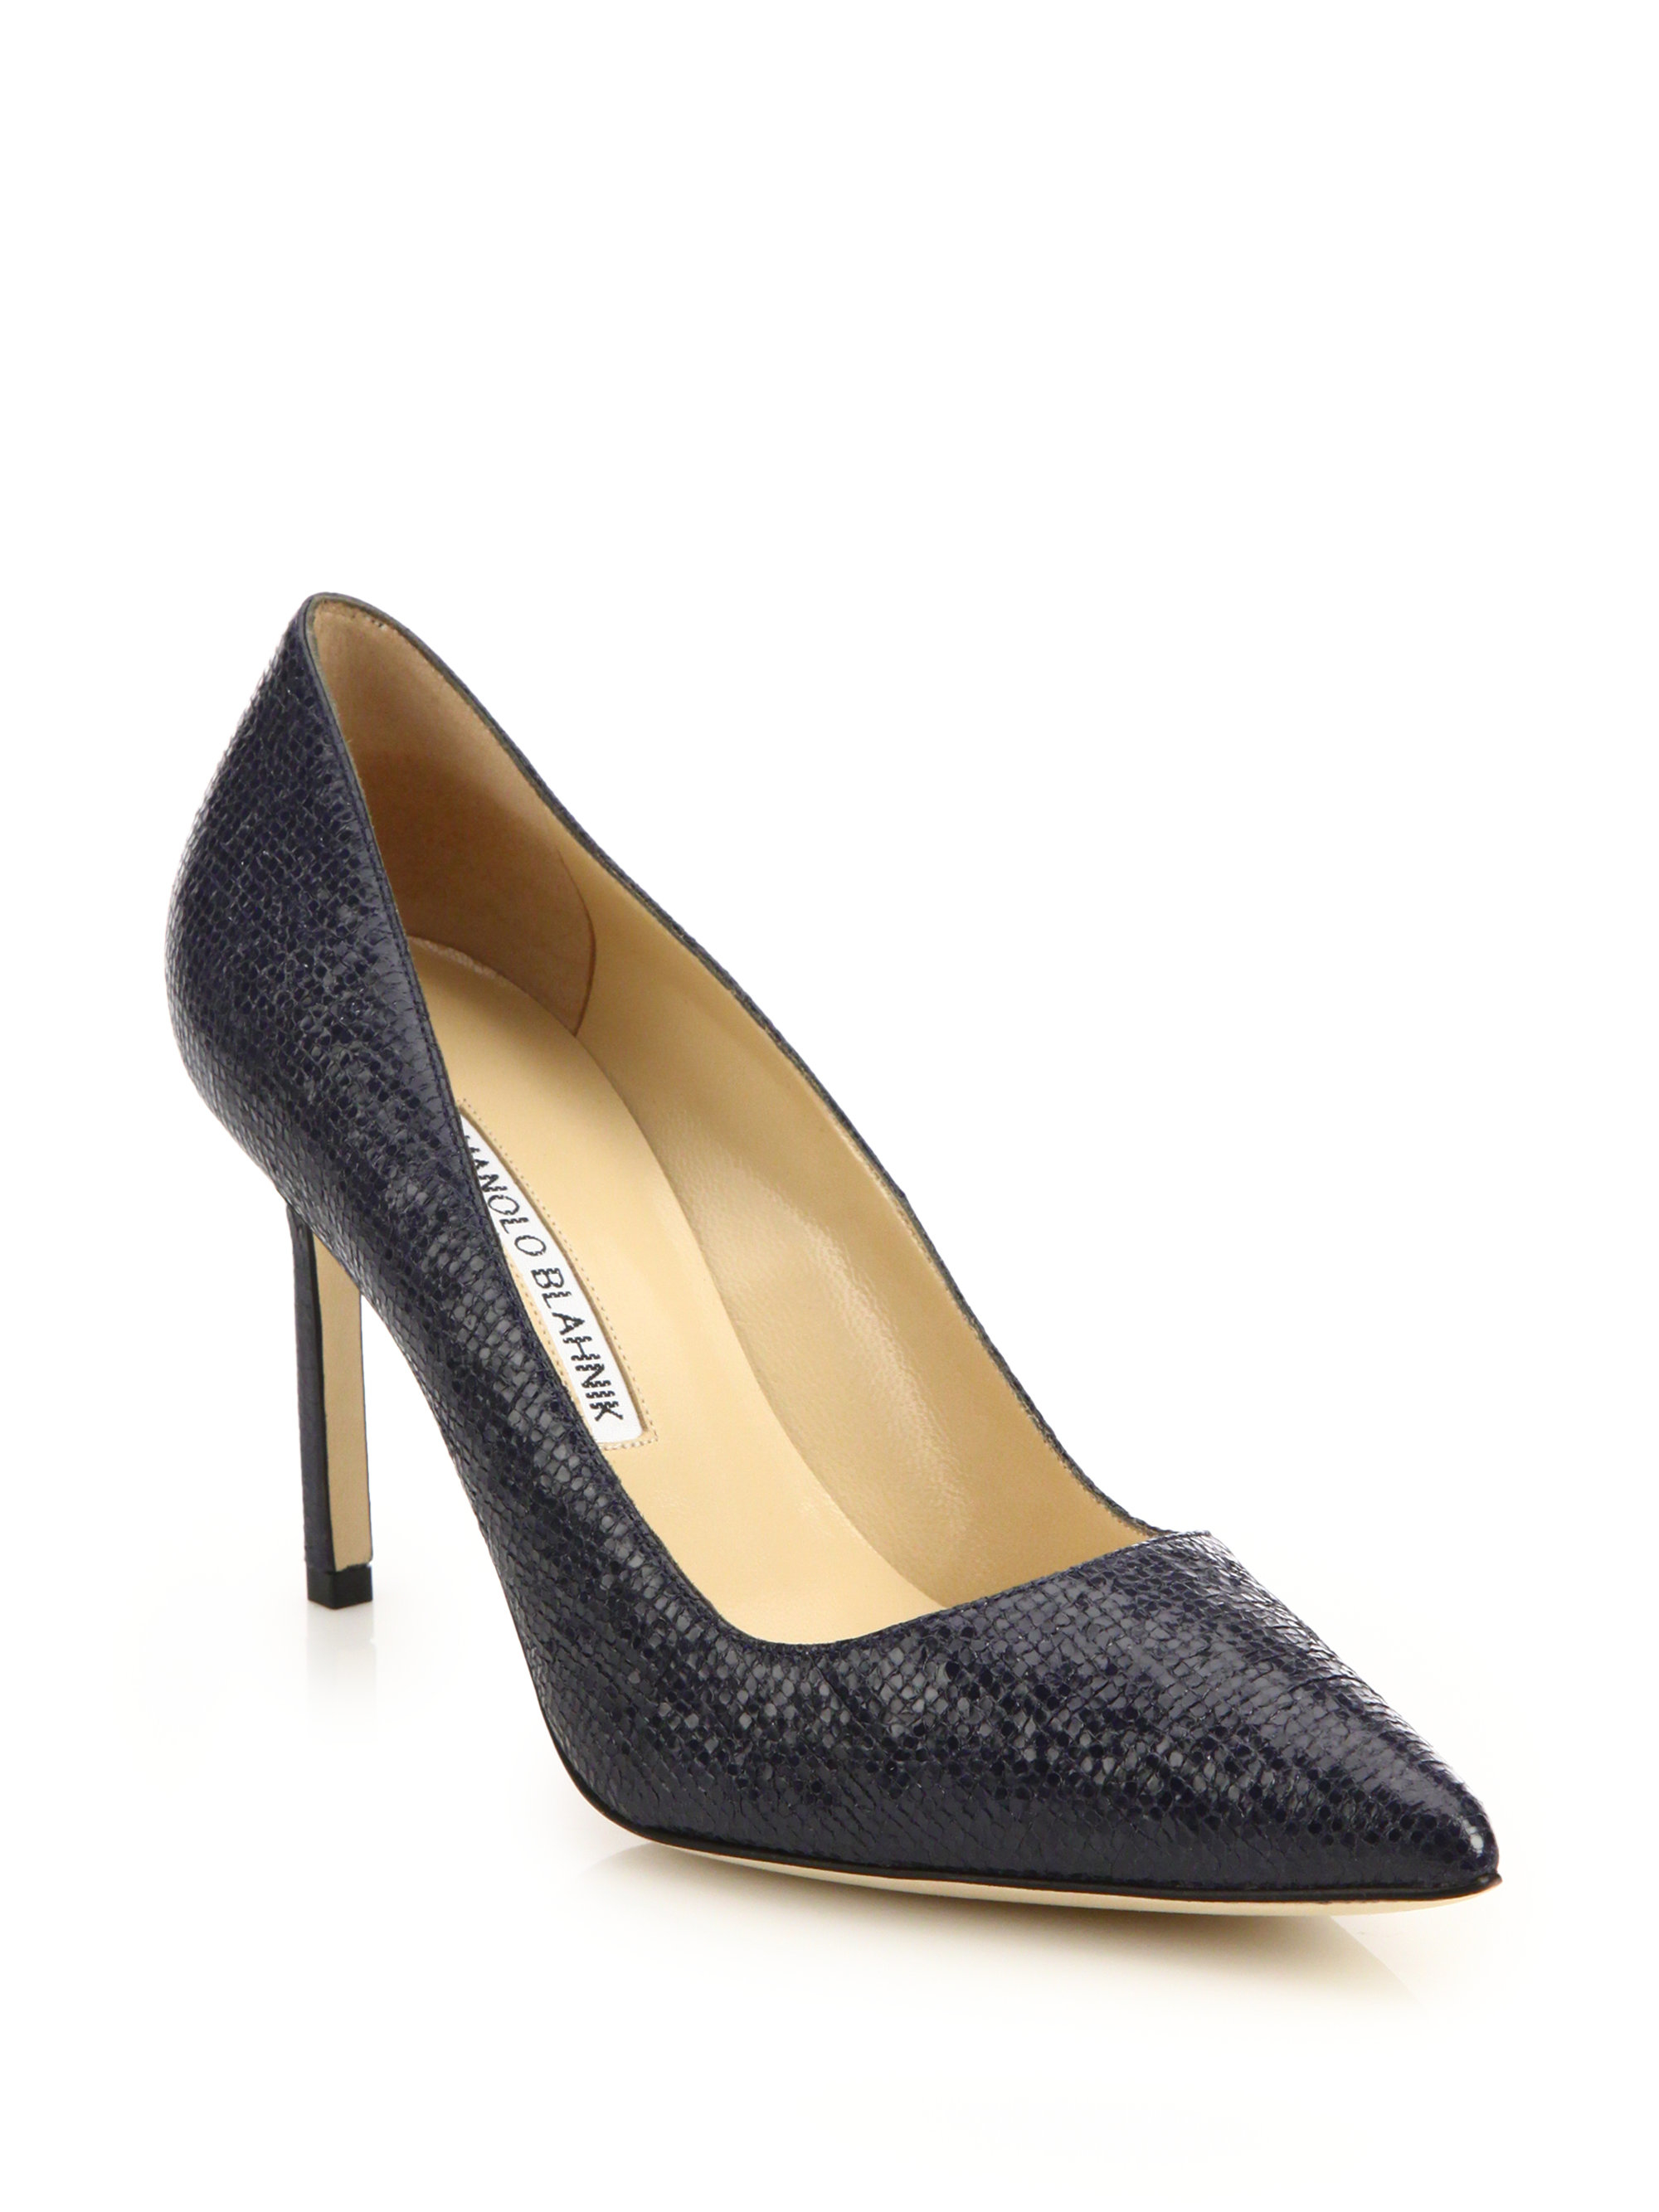 cd6e399b695ed Manolo Blahnik Bb 75 Embossed Patent Leather Pumps in Blue - Lyst